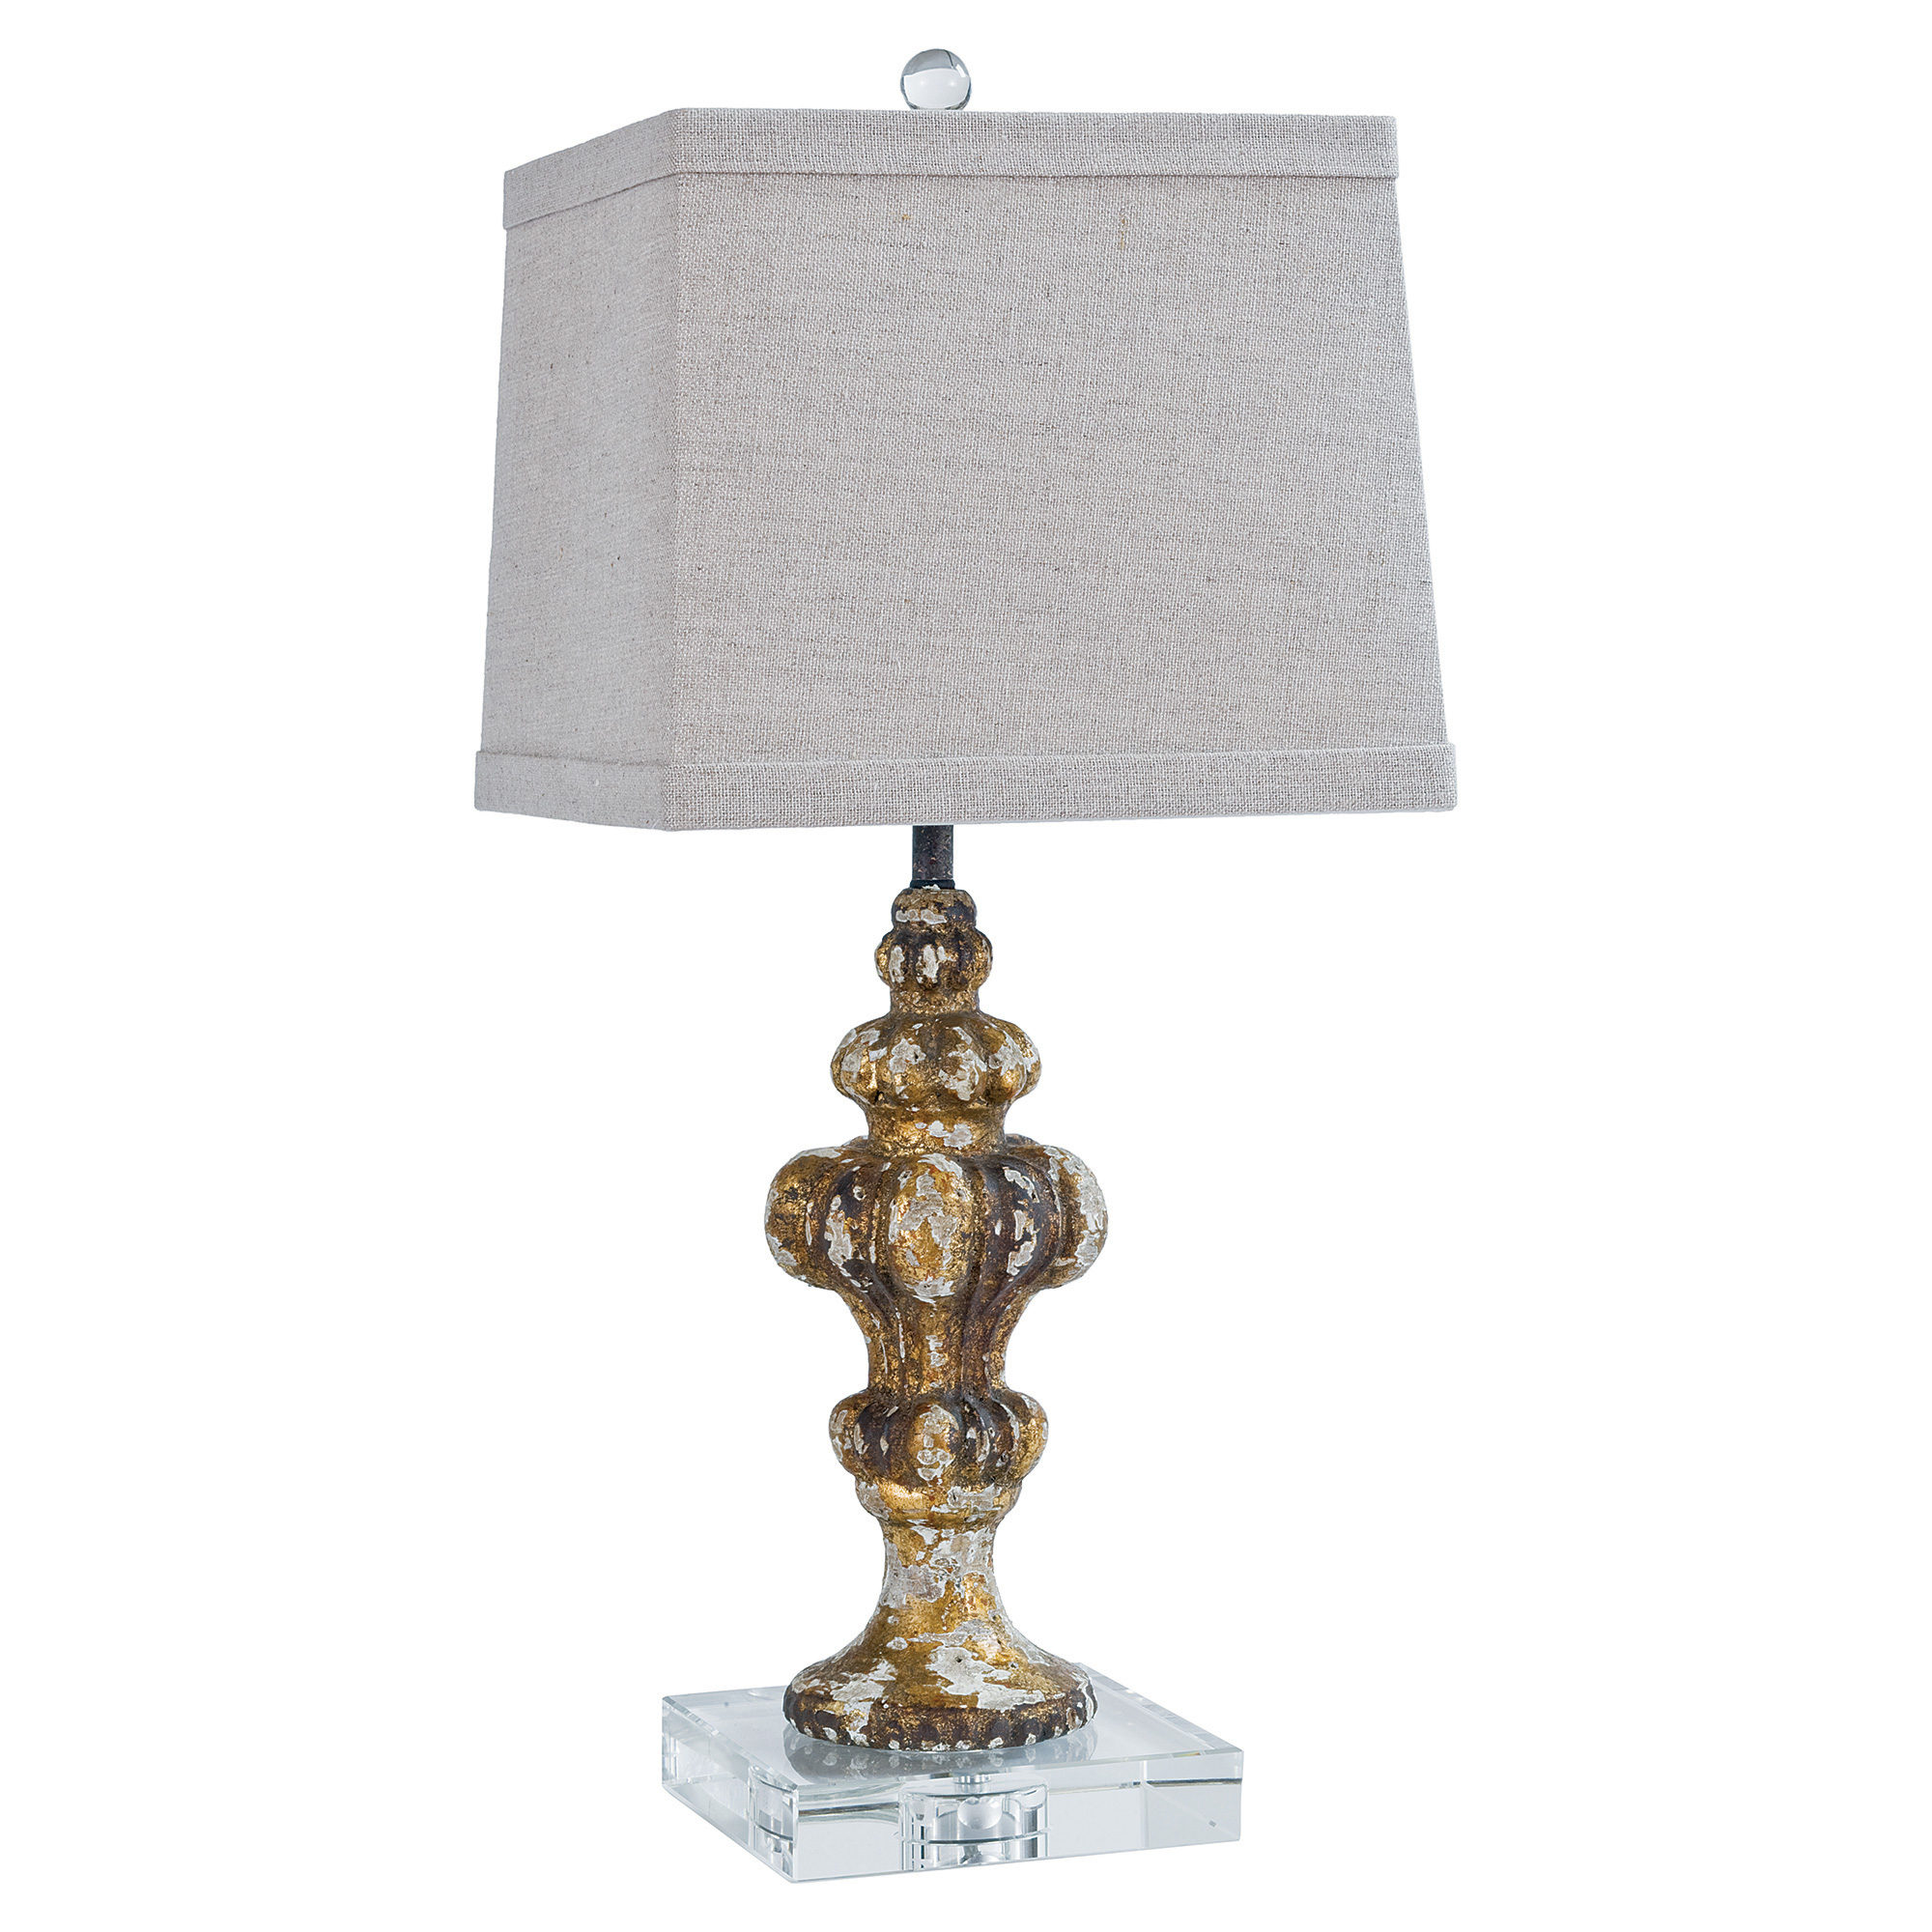 French Modern Acrylic Rustic Table Lamp